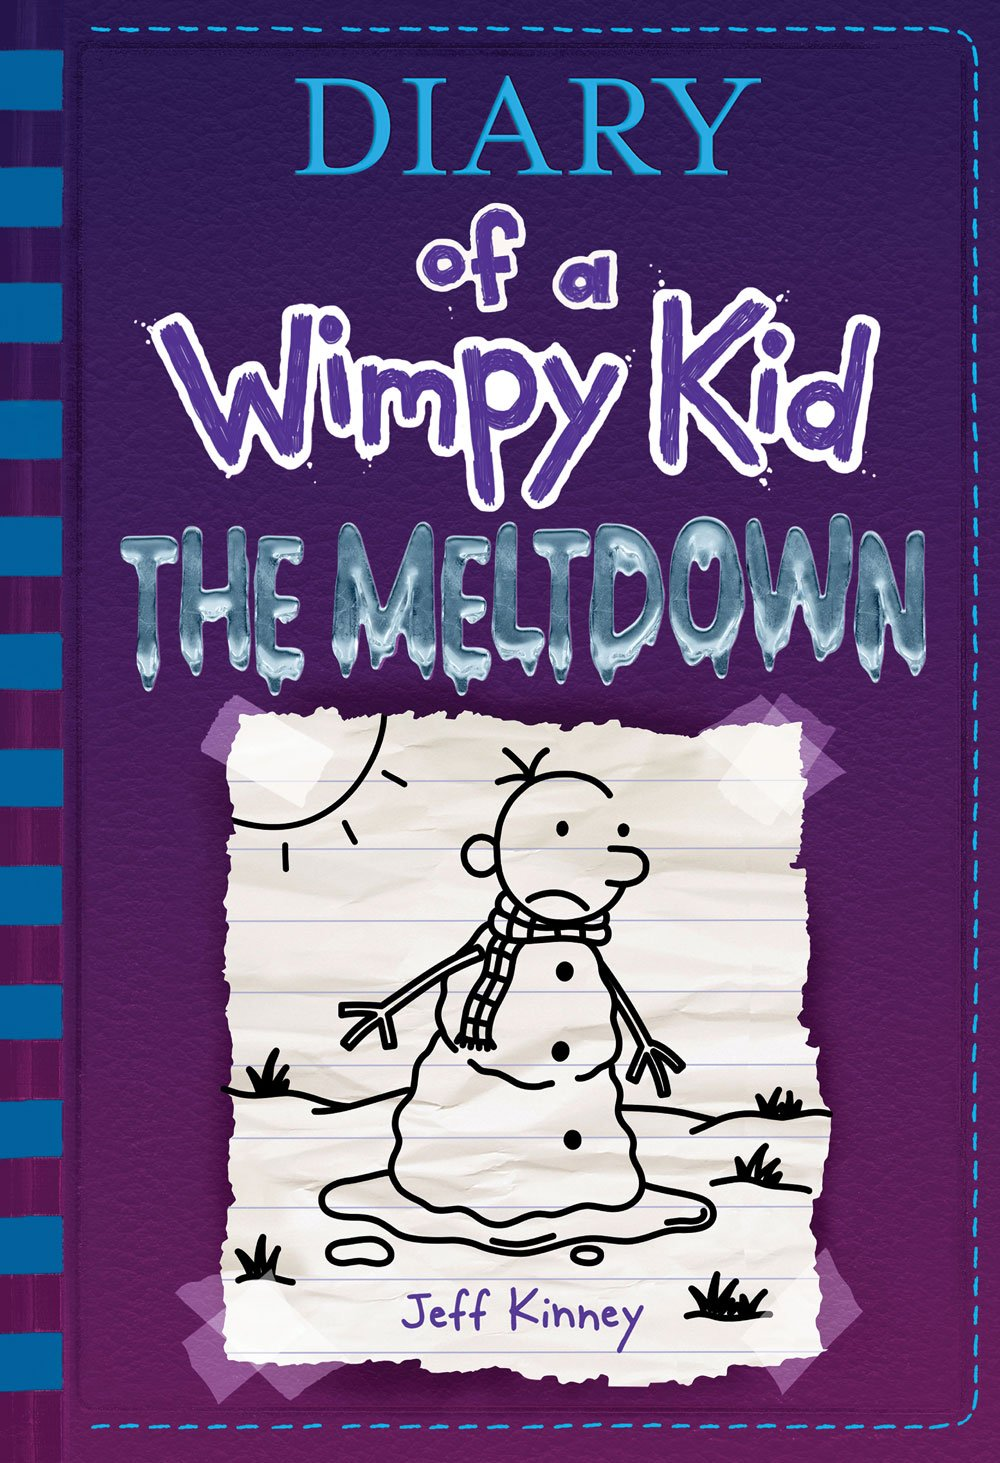 Cover image of Diary of a Wimpy Kid: The Meltdown by Jeff Kinney